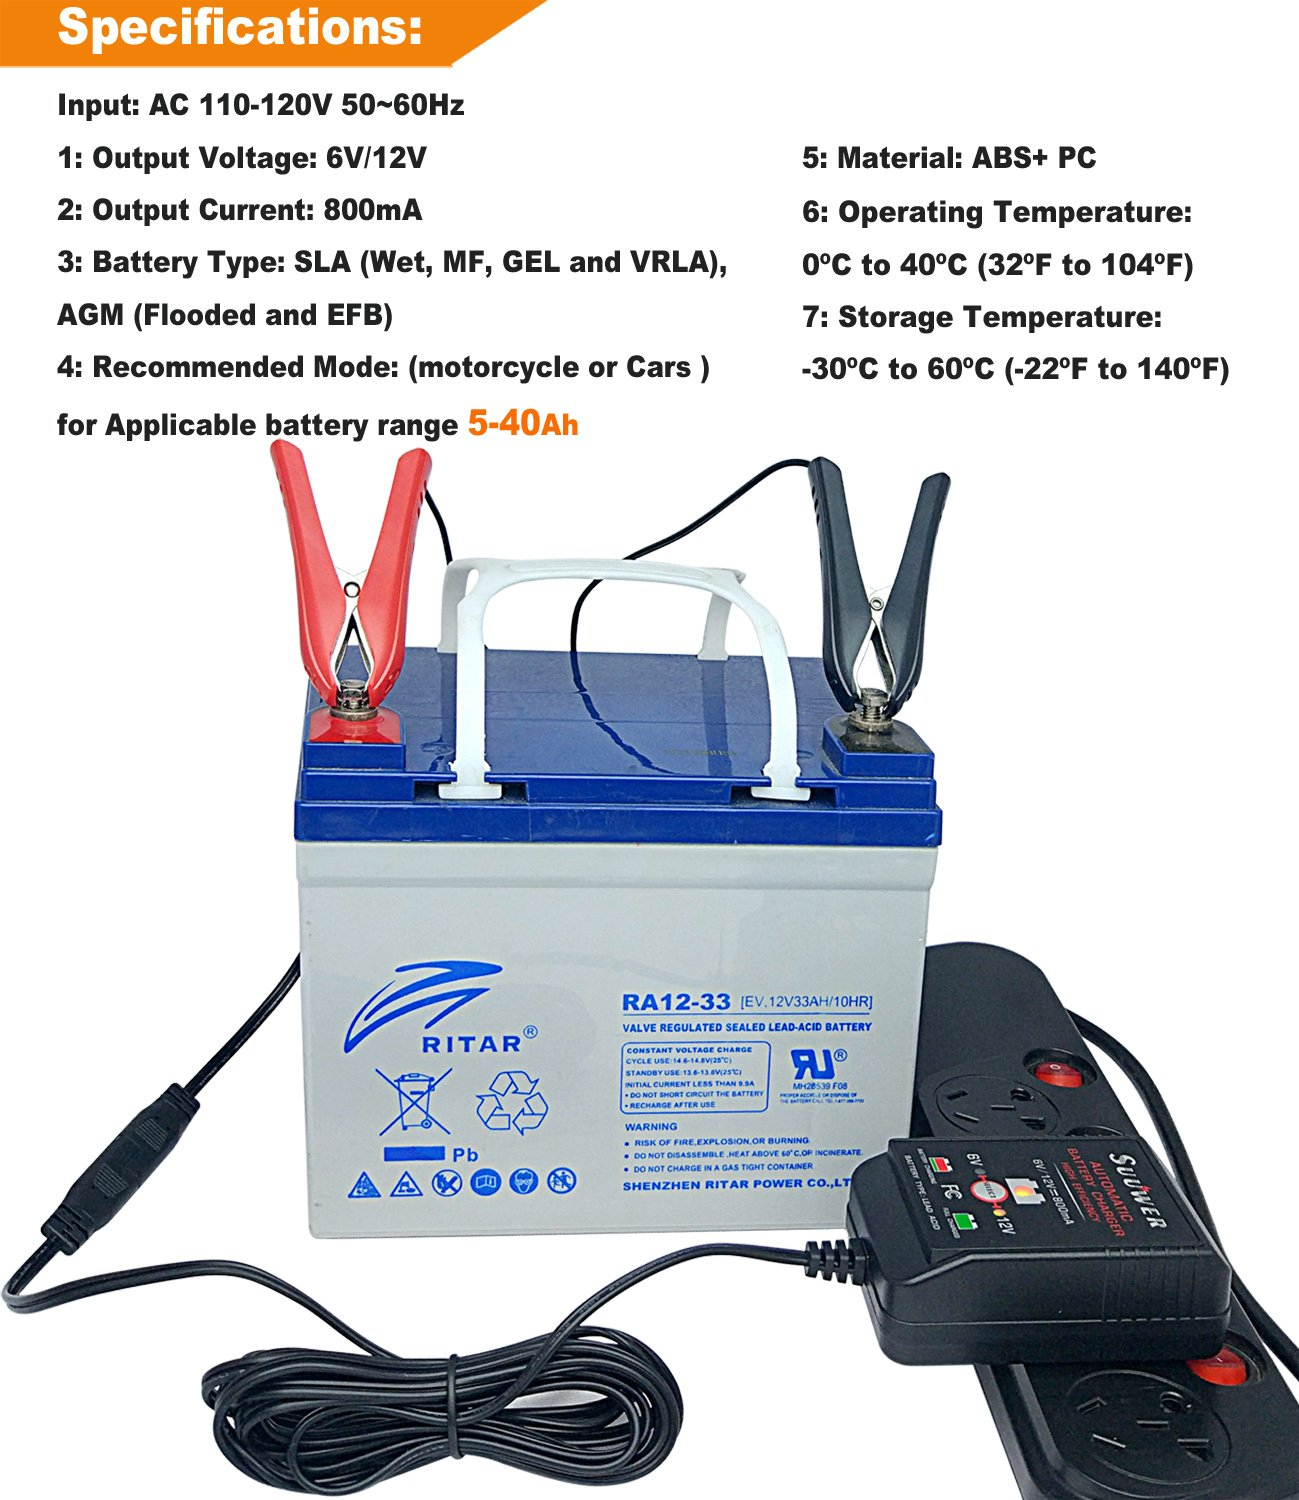 Suuwer 6v 12v 800ma Is A Super Smart Battery Charger Twovoltagerangebatterychargercircuit That Will Constantly Monitor Trickle Charge And Maintain For Car Truck Boat